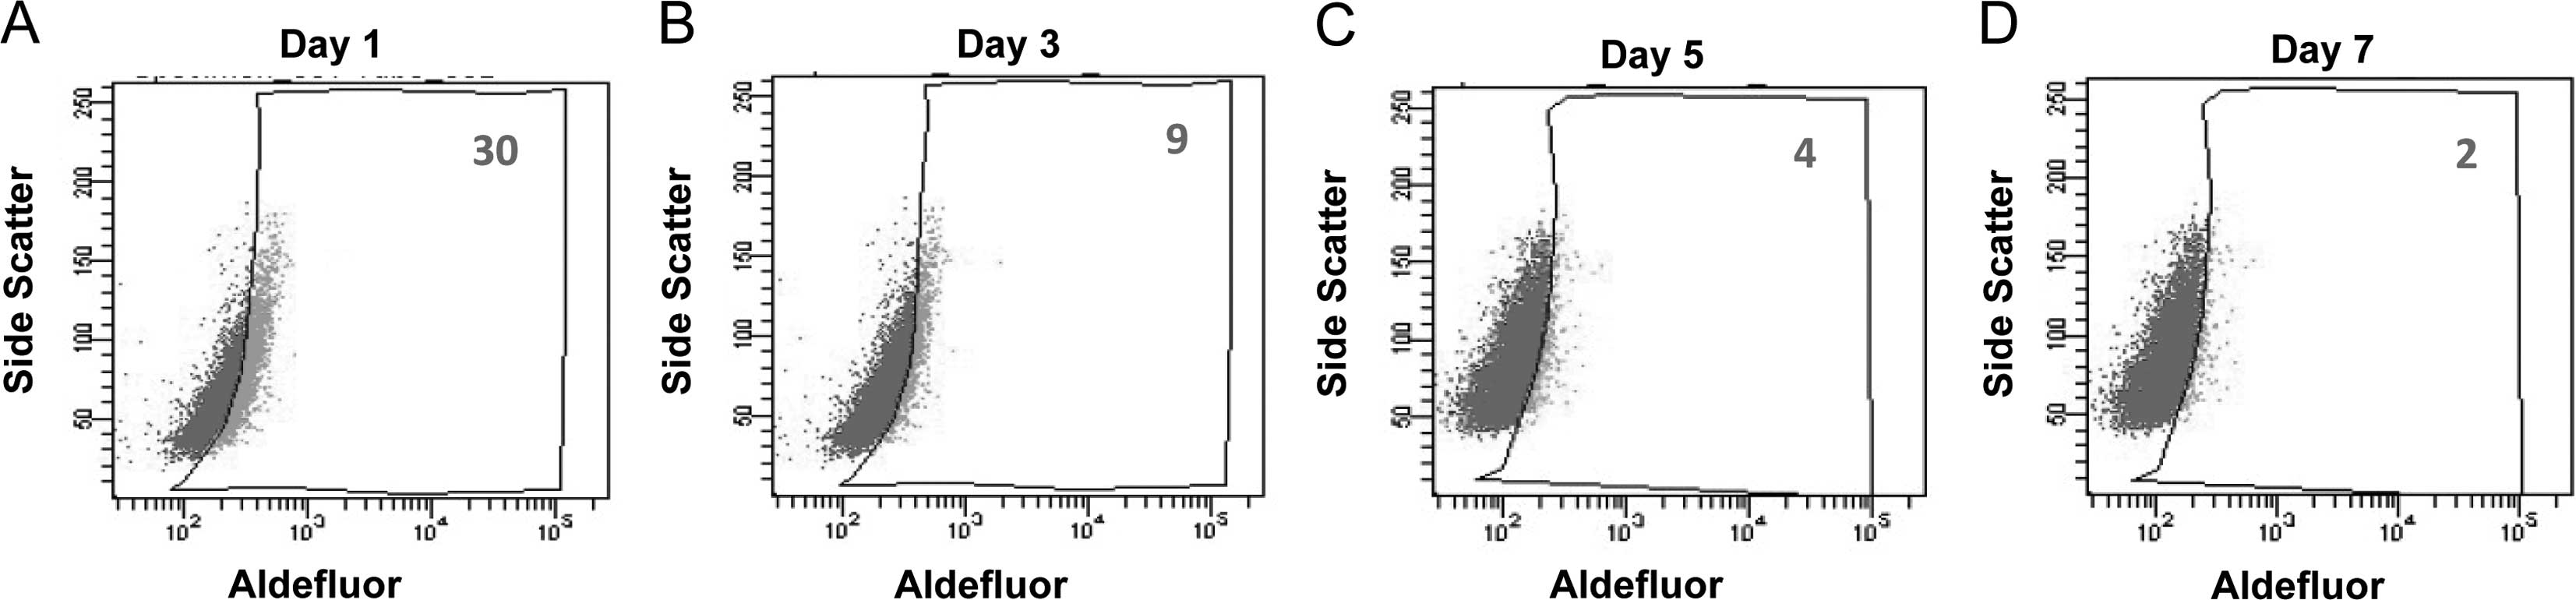 Aldehyde Dehydrogenase Activity Is A Cancer Stem Cell Marker Of Tongue Squamous Cell Carcinoma